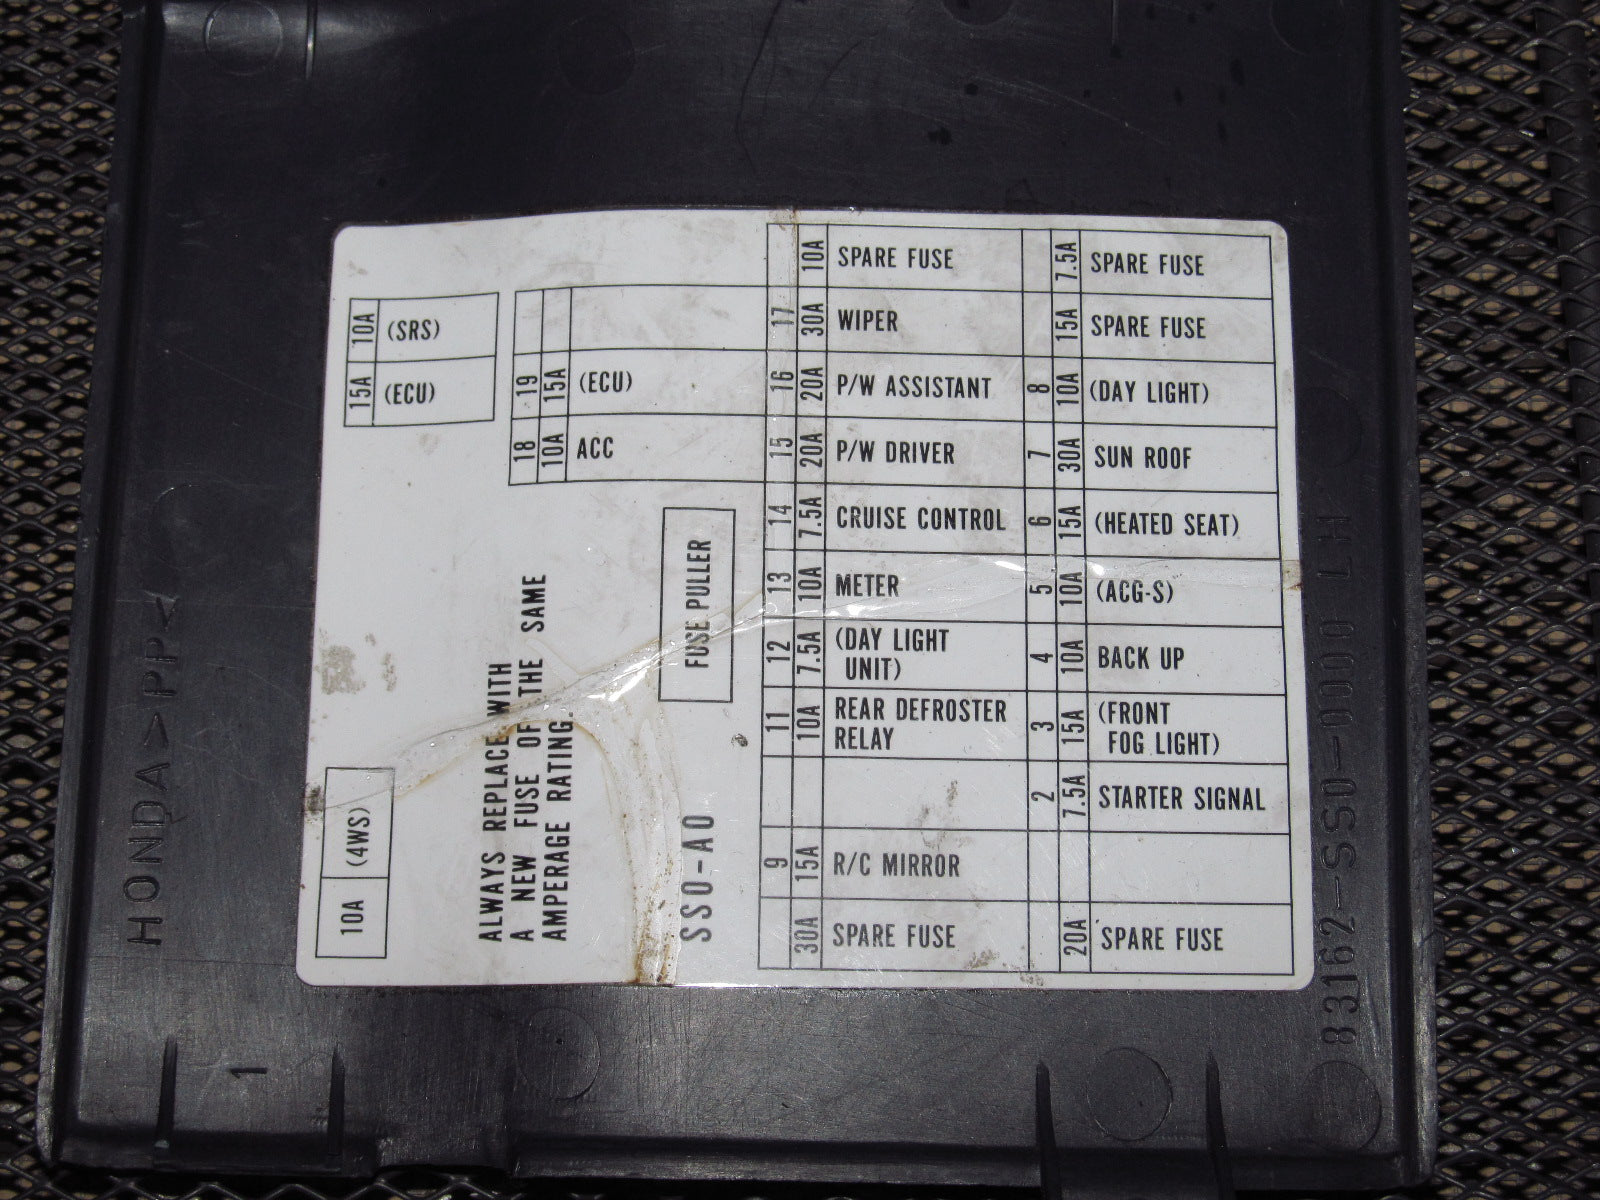 1993 bmw 3 series fuse box cover 92 93 94 95 96 honda prelude oem interior fuse box cover  92 93 94 95 96 honda prelude oem